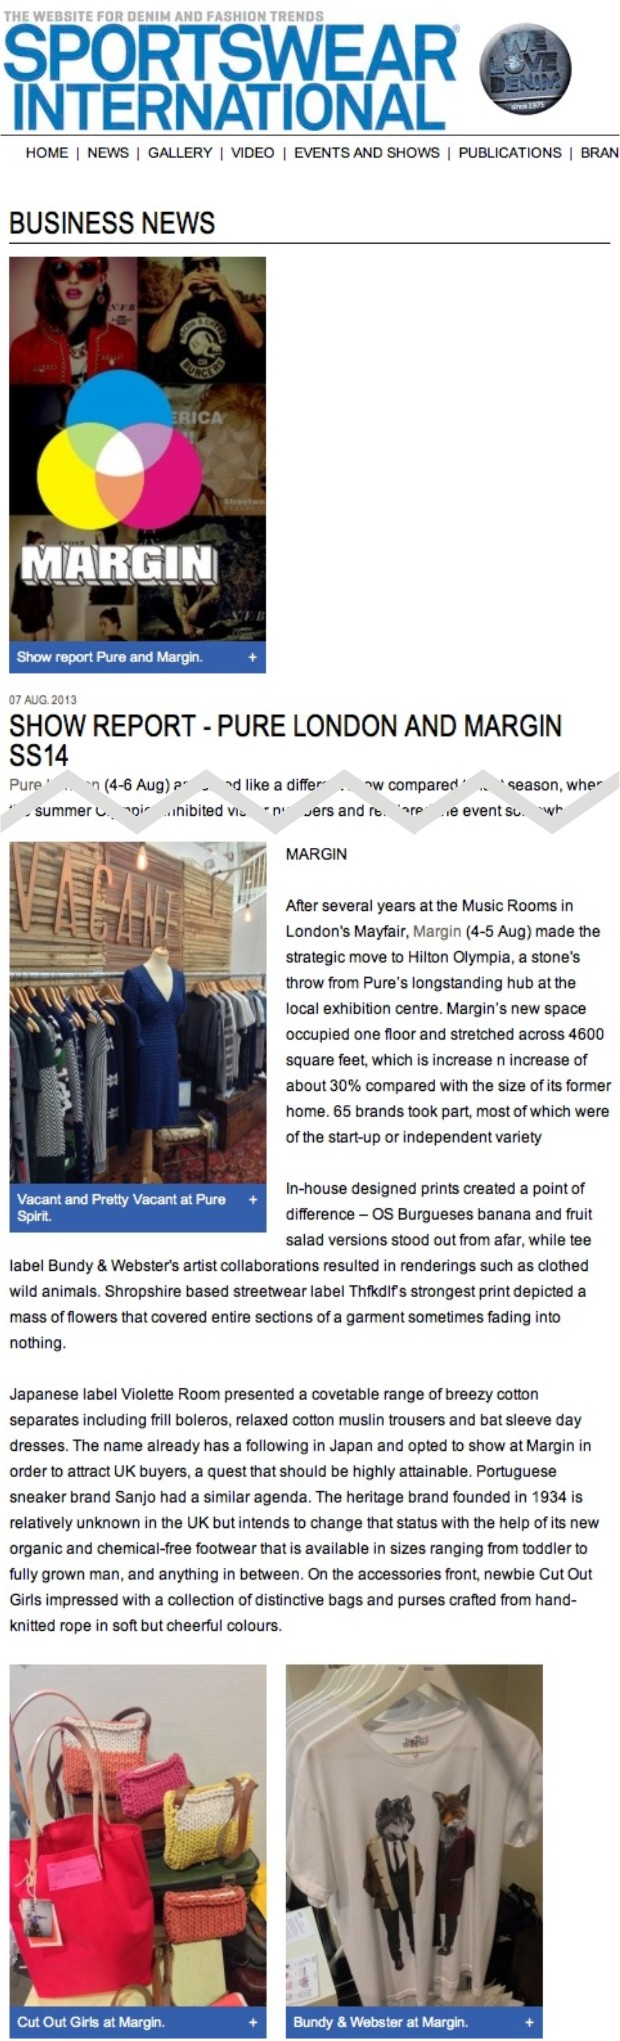 MARGIN  After several years at the Music Rooms in London's Mayfair, Margin (4-5 Aug) made the strategic move to Hilton Olympia, a stone's throw from Pure's longstanding hub at the local exhibition centre. Margin's new space occupied one floor and stretched across 4600 square feet, which is increase n increase of about 30% compared with the size of its former home. 65 brands took part, most of which were of the start-up or independent variety  In-house designed prints created a point of difference – OS Burgueses banana and fruit salad versions stood out from afar, while tee label Bundy & Webster's artist collaborations resulted in renderings such as clothed wild animals. Shropshire based streetwear label Thfkdlf's strongest print depicted a mass of flowers that covered entire sections of a garment sometimes fading into nothing.  Japanese label Violette Room presented a covetable range of breezy cotton separates including frill boleros, relaxed cotton muslin trousers and bat sleeve day dresses. The name already has a following in Japan and opted to show at Margin in order to attract UK buyers, a quest that should be highly attainable. Portuguese sneaker brand Sanjo had a similar agenda. The heritage brand founded in 1934 is relatively unknown in the UK but intends to change that status with the help of its new organic and chemical-free footwear that is available in sizes ranging from toddler to fully grown man, and anything in between. On the accessories front, newbie Cut Out Girls impressed with a collection of distinctive bags and purses crafted from hand-knitted rope in soft but cheerful colours.